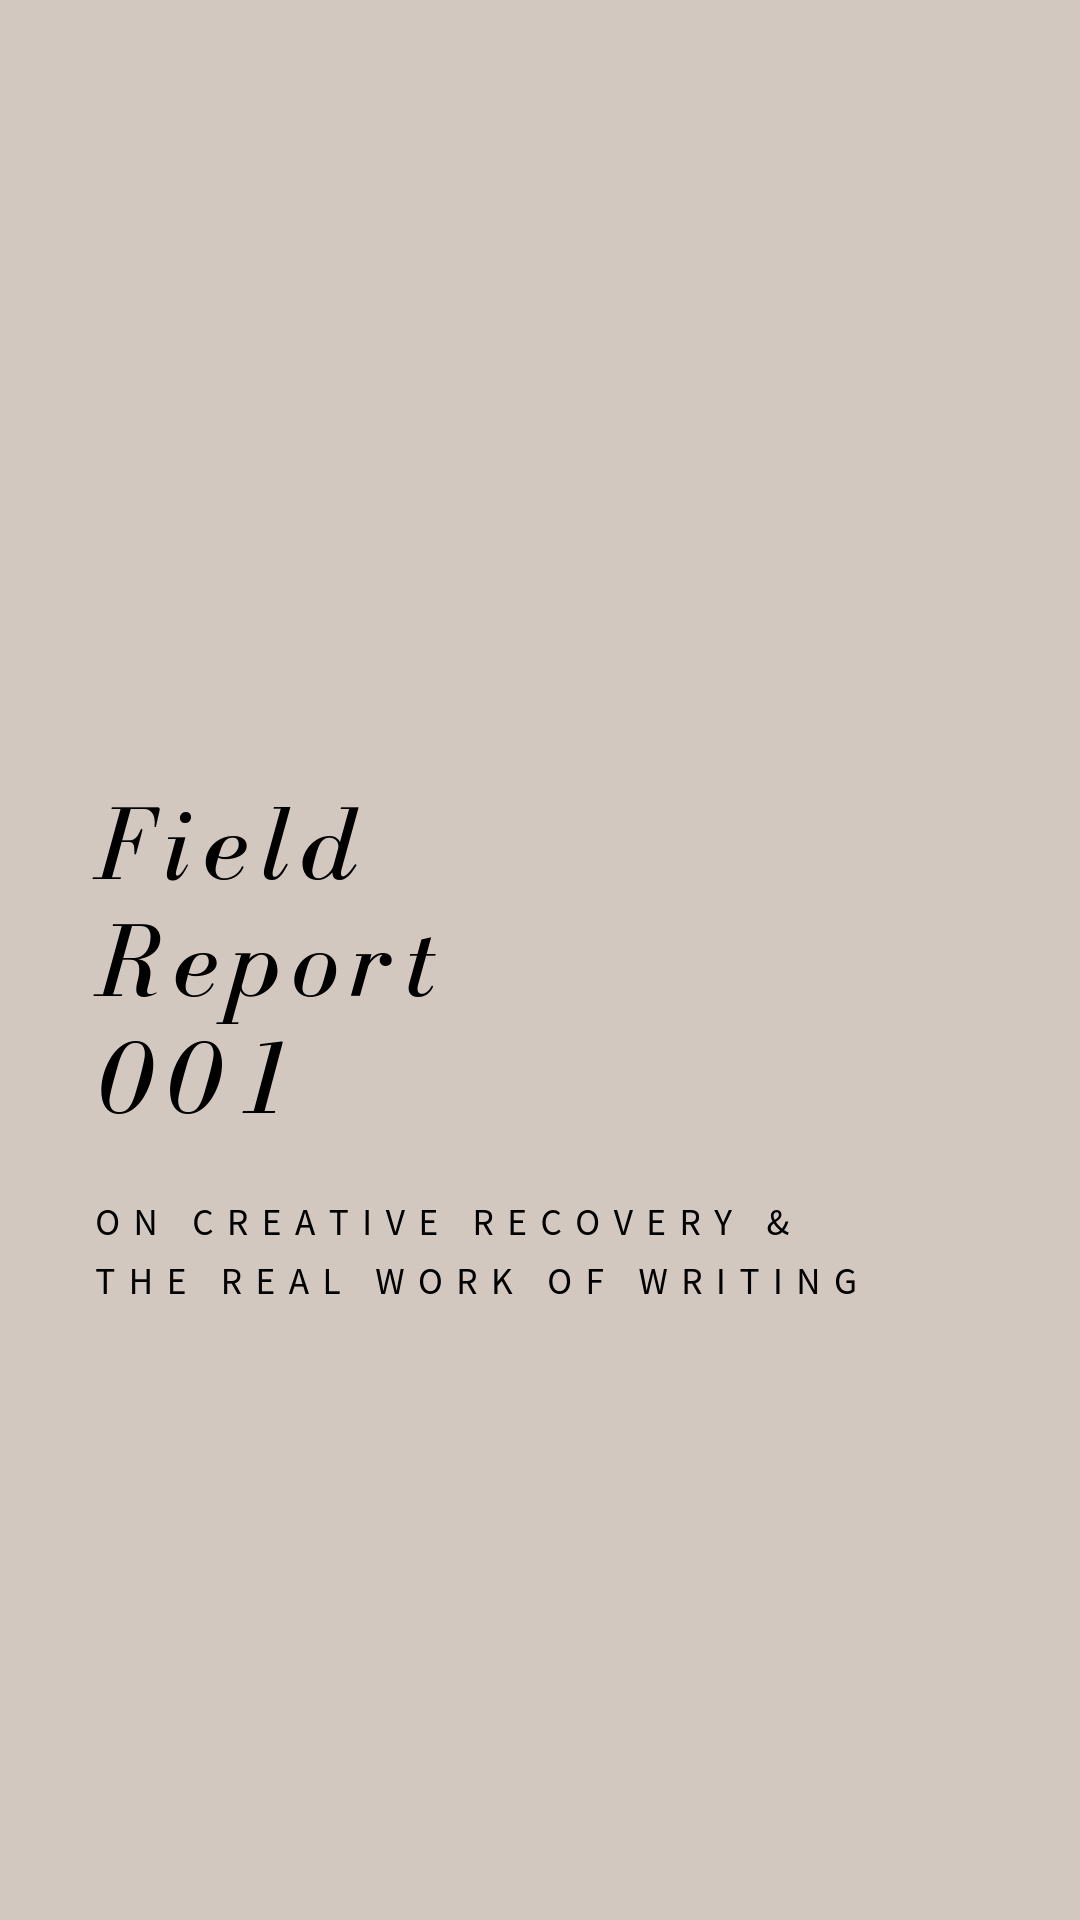 Field Report 001: On Creative Recovery & the Real Work of Writing. Written by Jess Davidson.